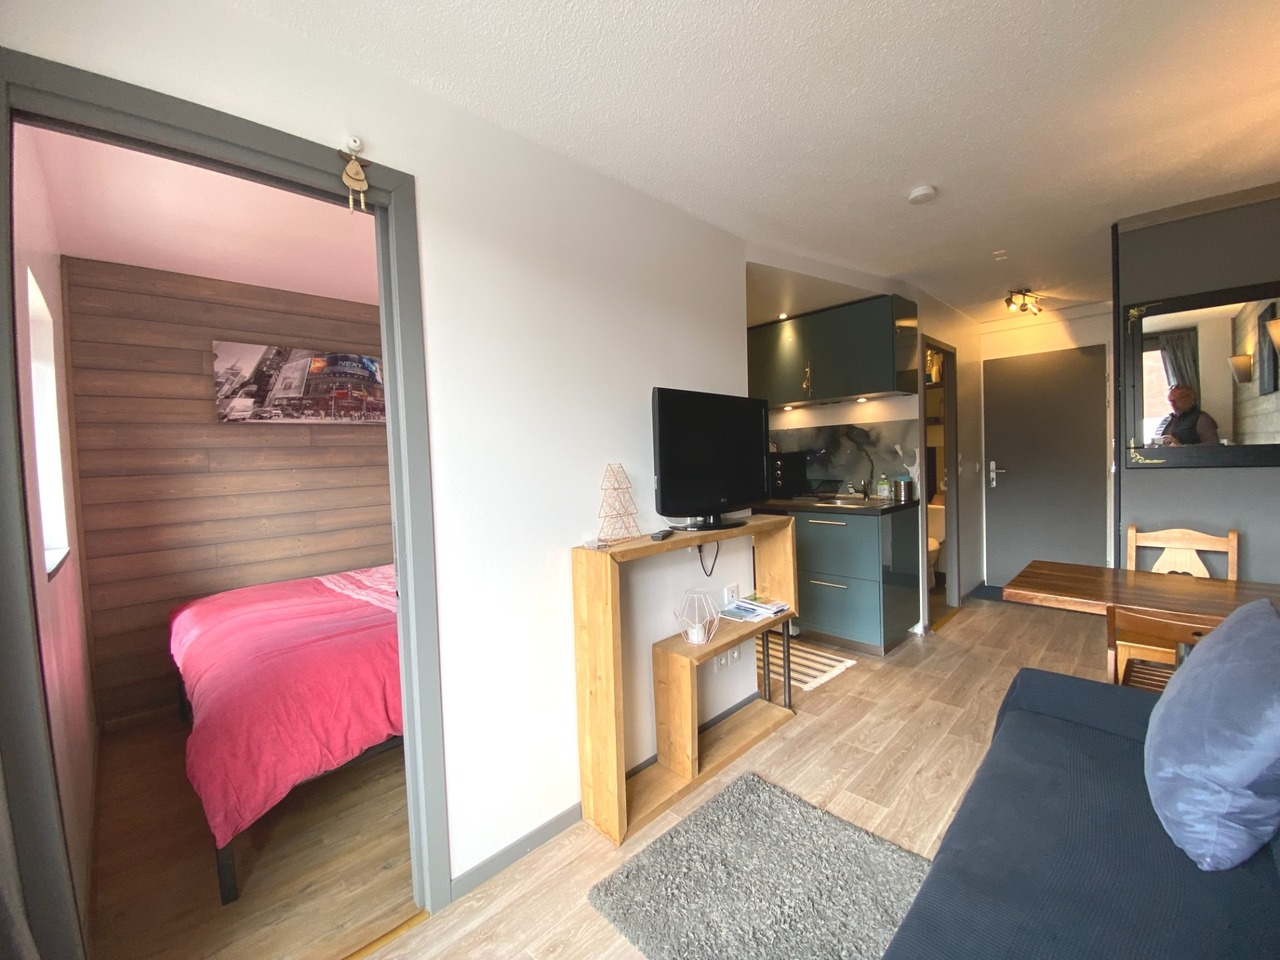 T2 IN THE CENTRE OF THE RESORT WITH BALCONY Accommodation in Val Thorens